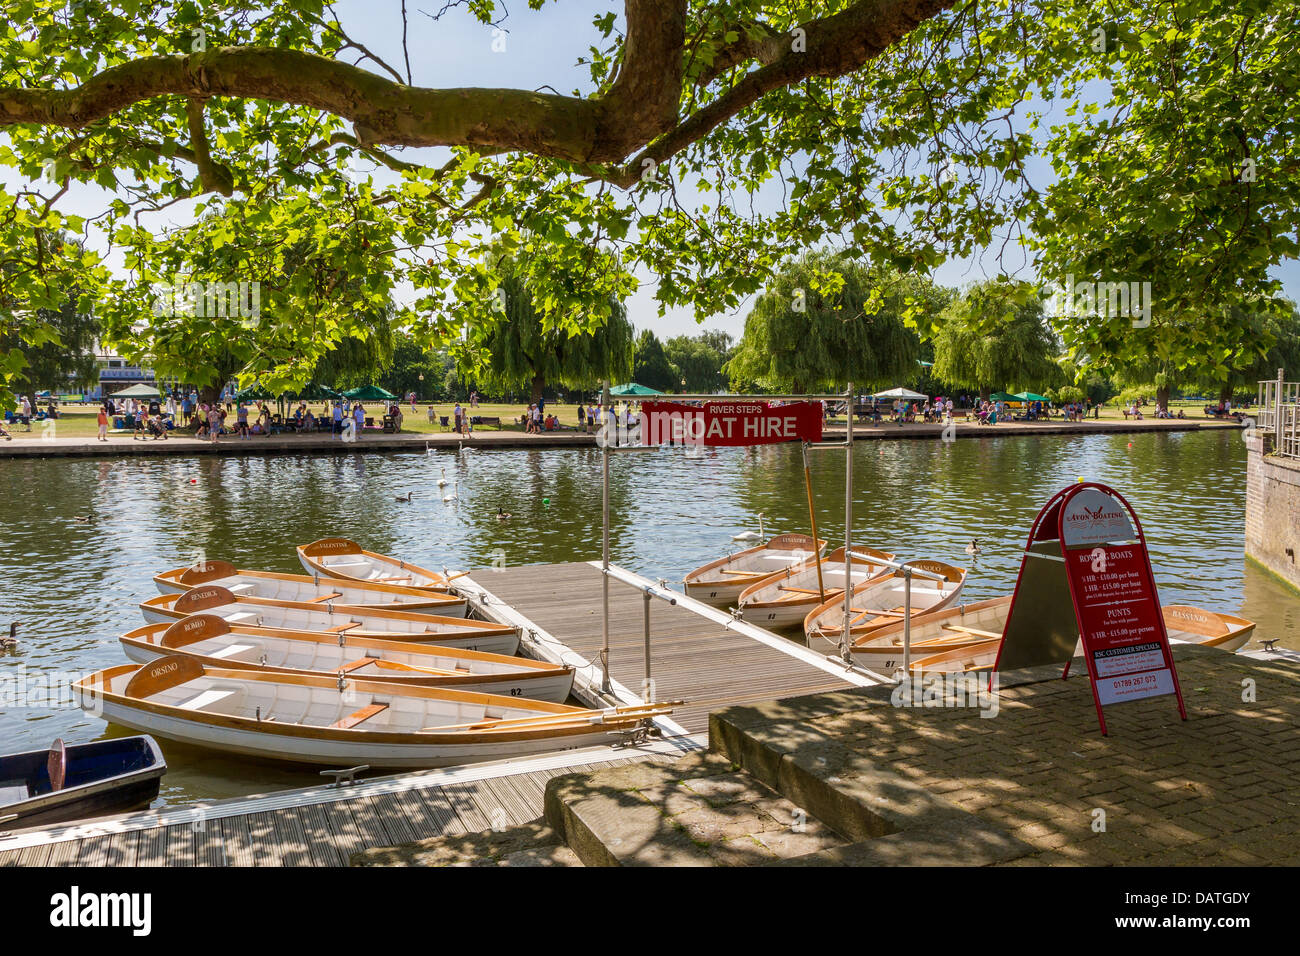 Rowing boat hire on the River Avon in Stratford - Stock Image